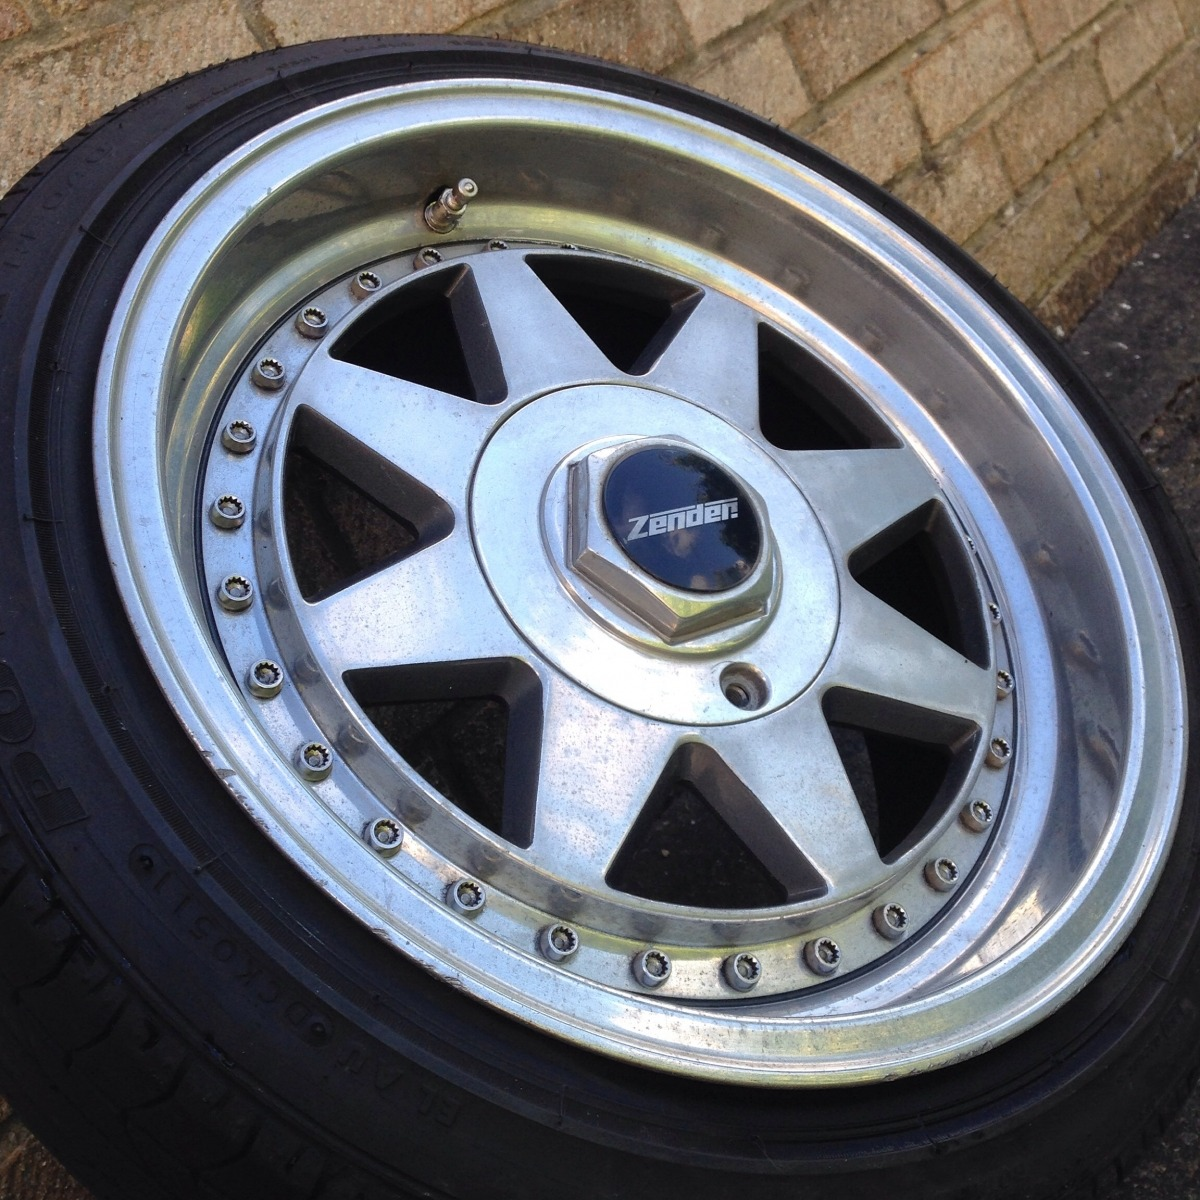 Zender star wheels